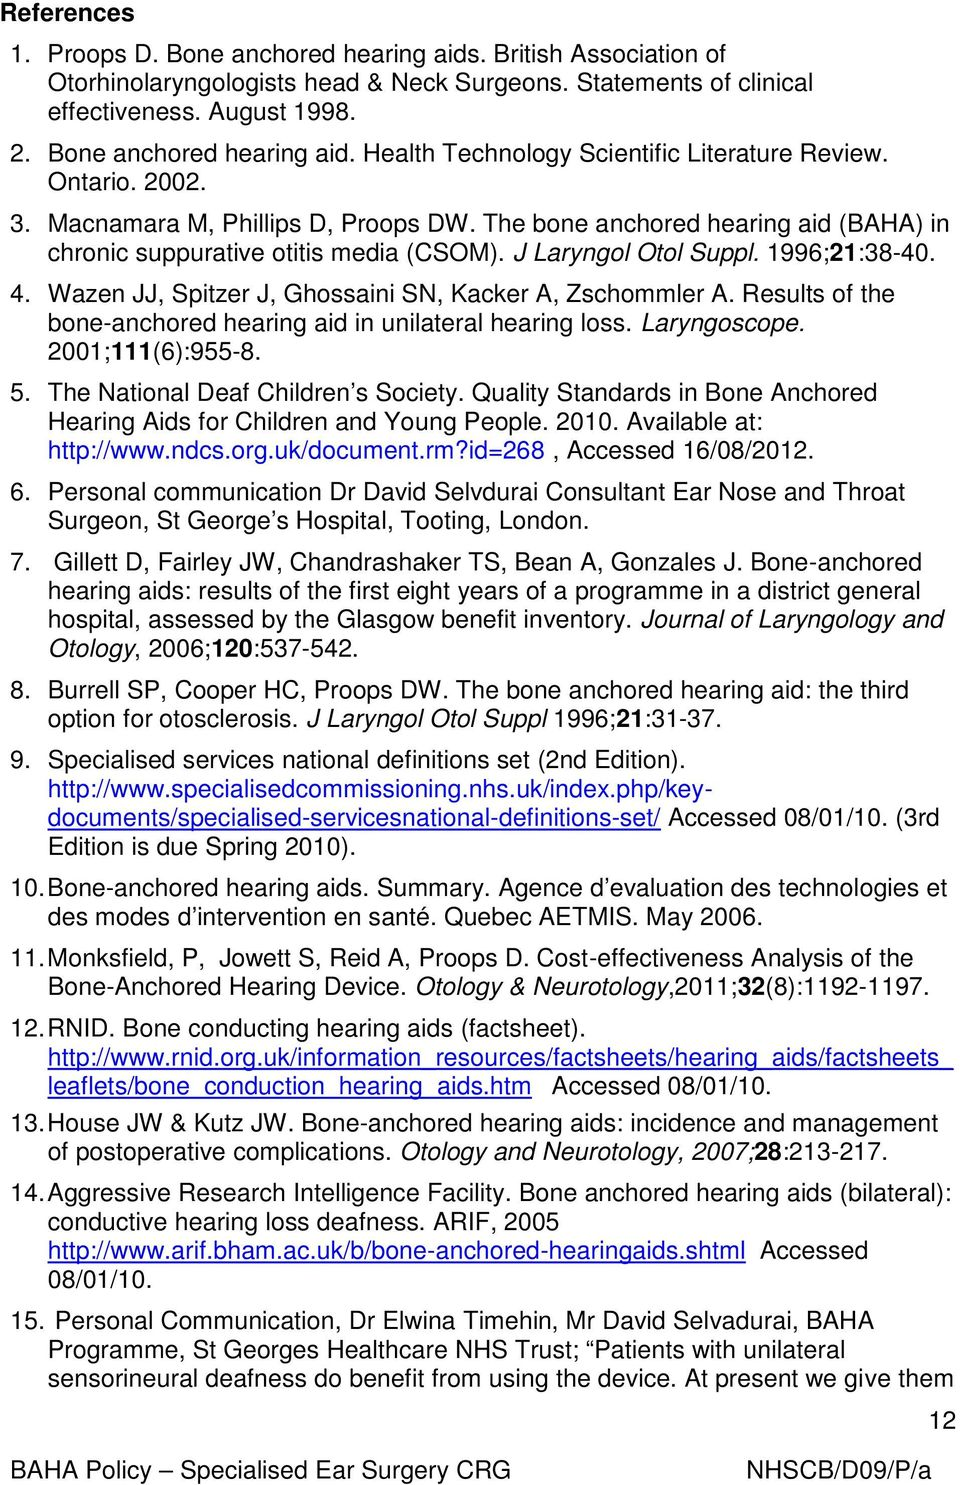 Wazen JJ, Spitzer J, Ghossaini SN, Kacker A, Zschommler A. Results of the bone-anchored hearing aid in unilateral hearing loss. Laryngoscope. 2001;111(6):955-8. 5.